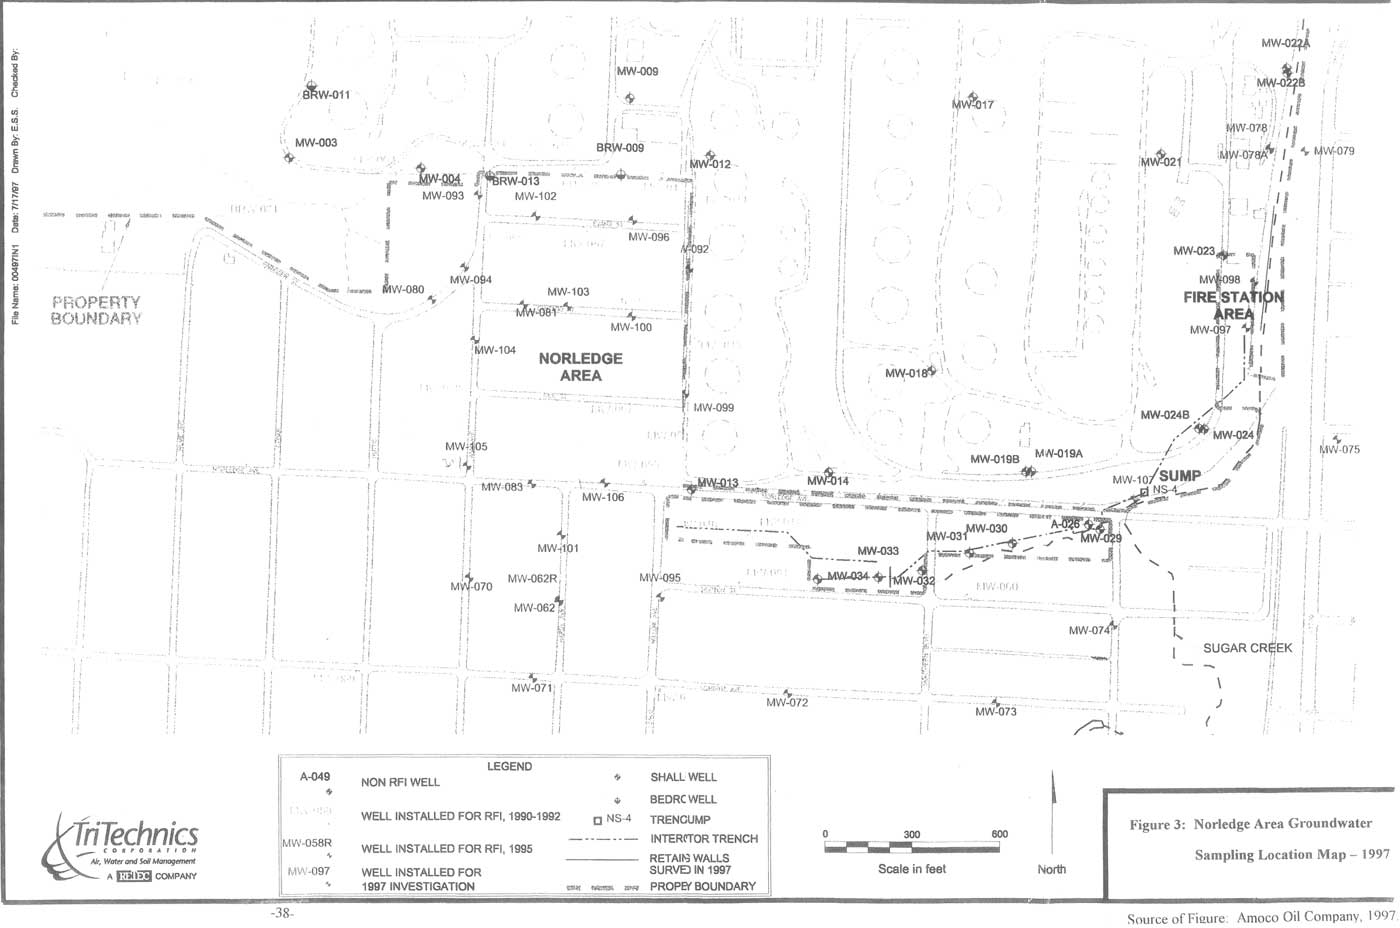 Norledge Area Groundwater Sampling Location Map - 1997